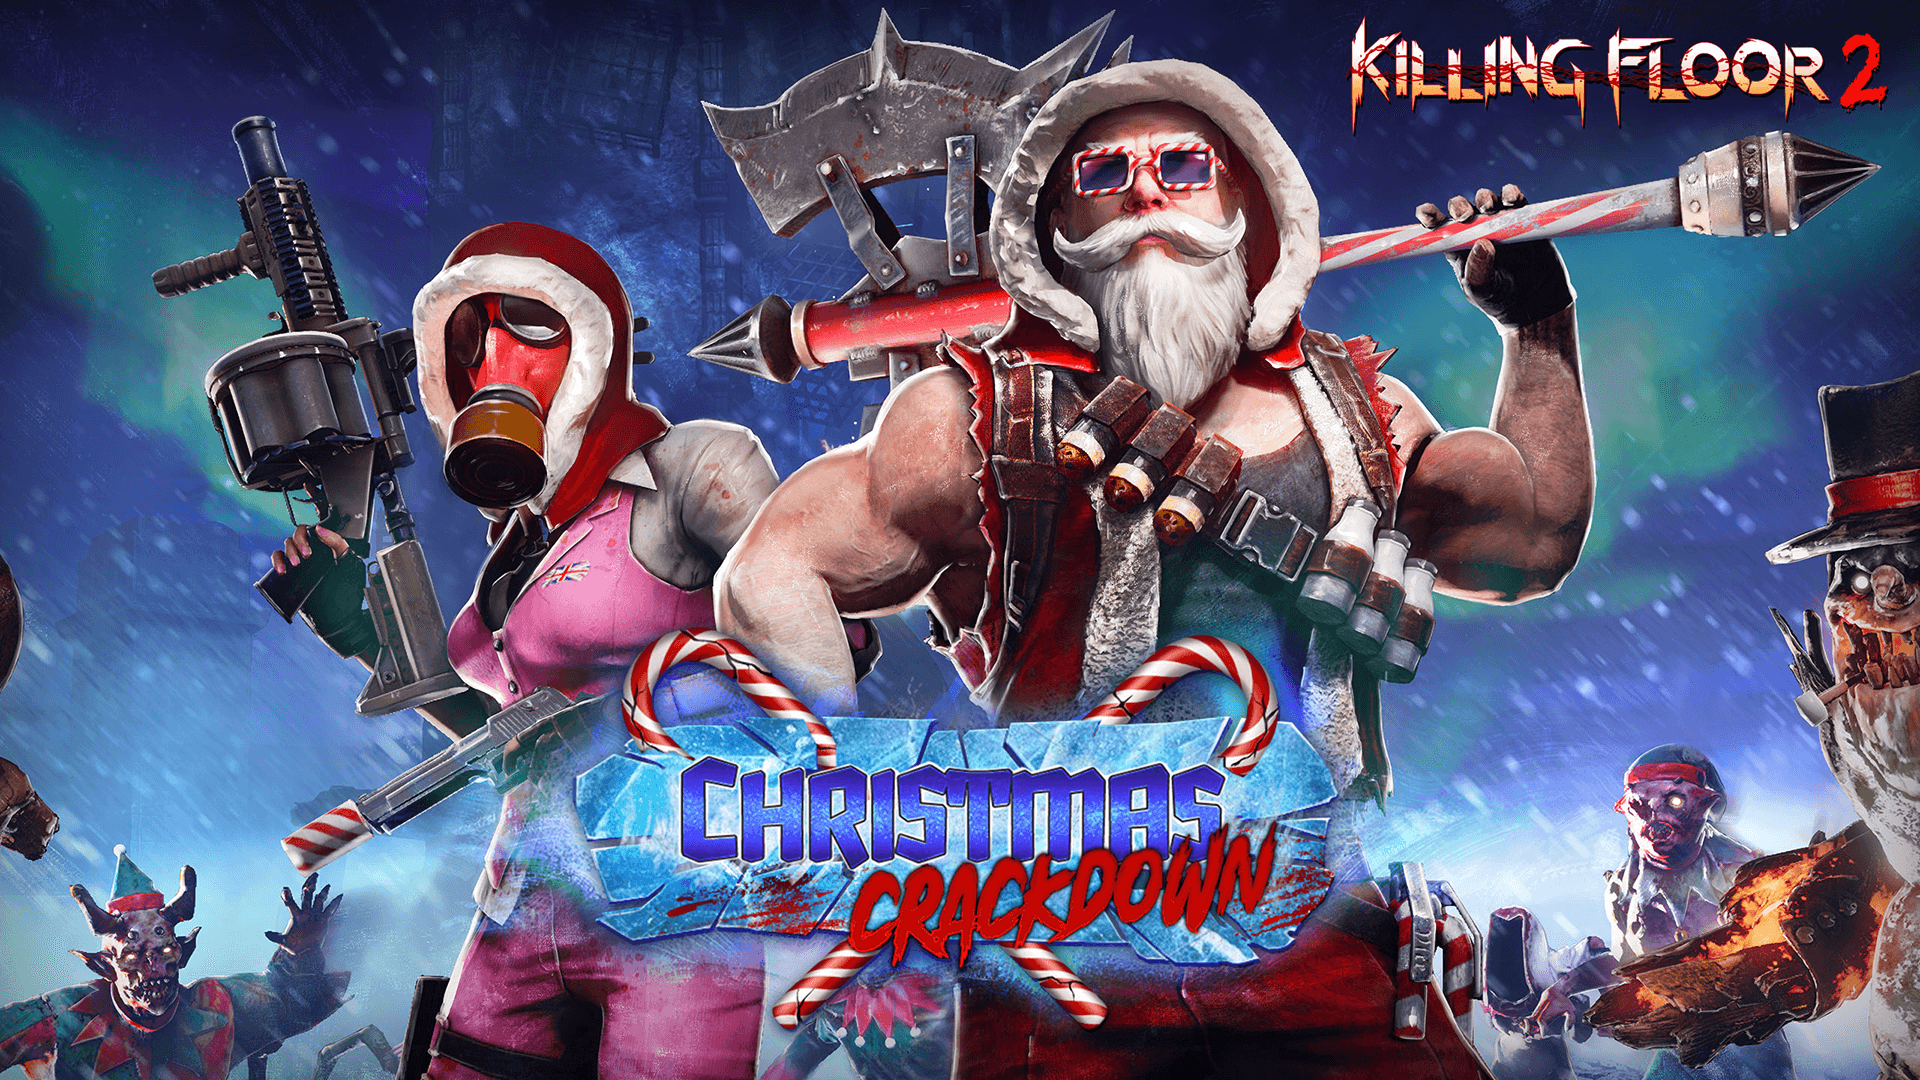 Kf2 Christmas 2021 Cosmetics Killing Floor 2 Christmas Crackdown Update Out Now On Egs